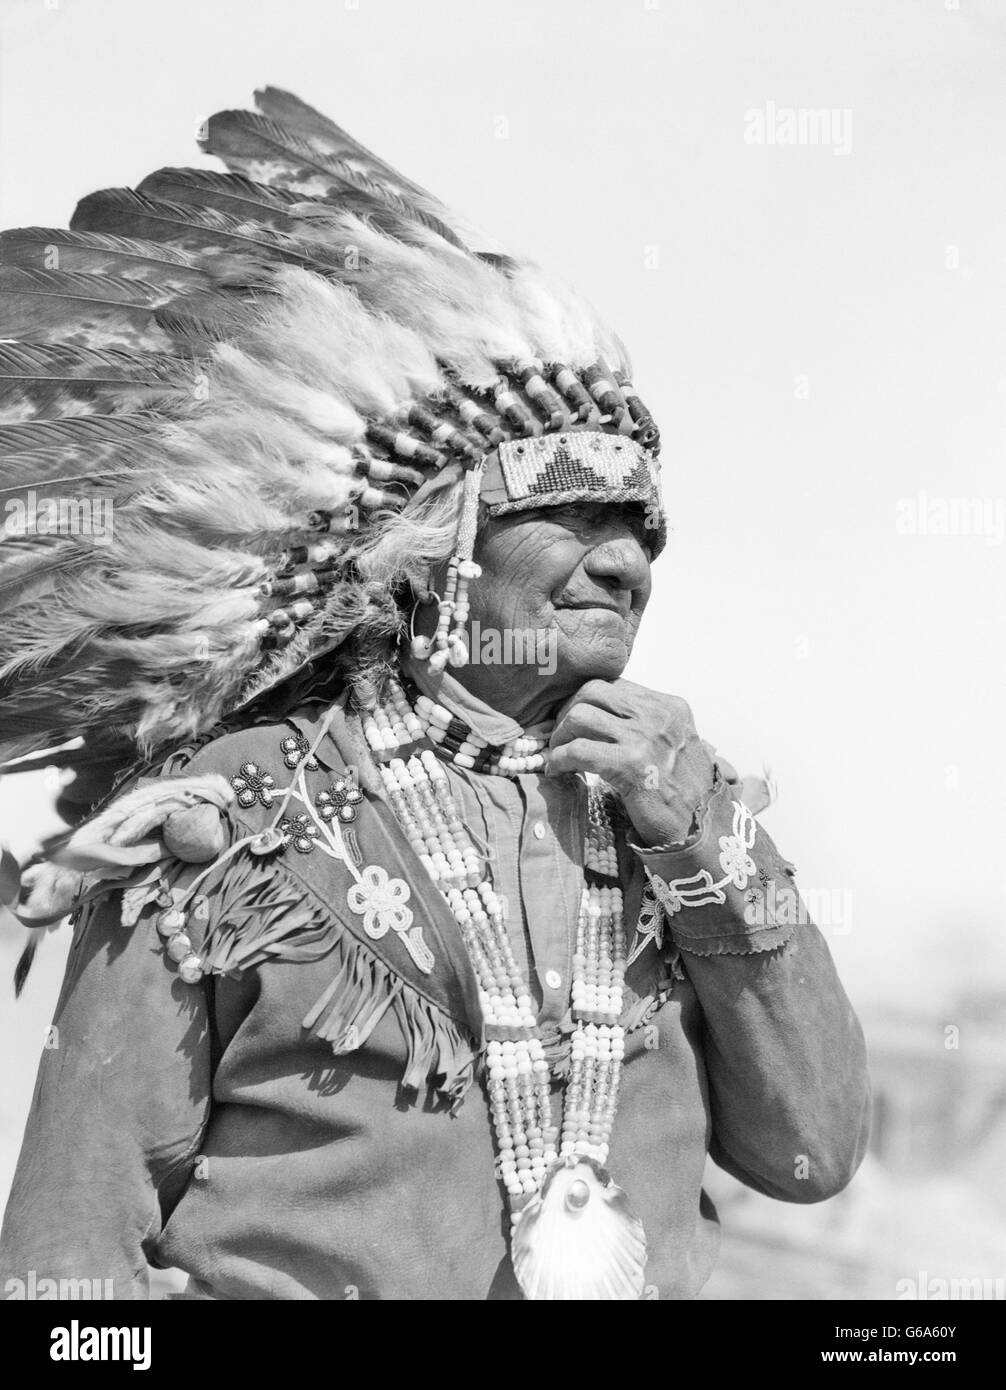 1930s NATIVE AMERICAN MAN CHIEF WEARING FULL FEATHERED HEADDRESS BEADED COSTUME SANTA CLARA PUEBLO NEW MEXICO USA - Stock Image